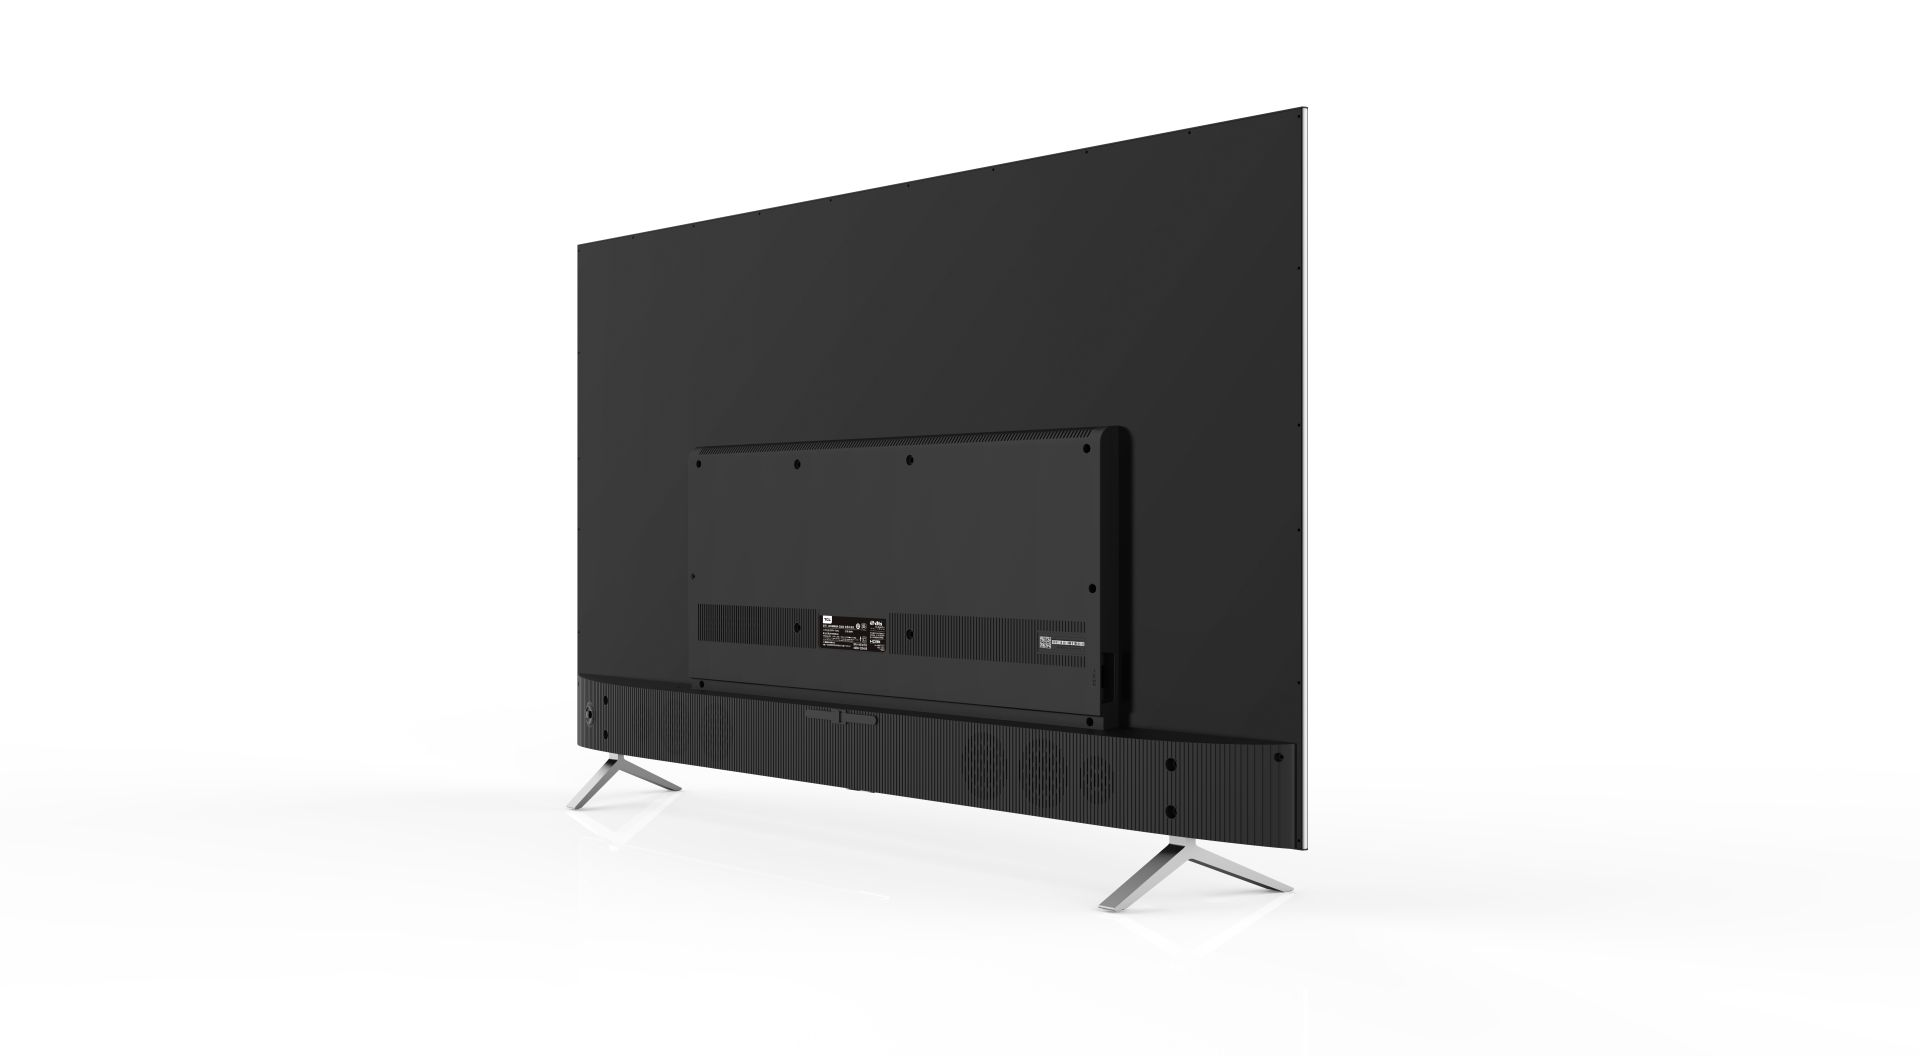 TCl S79 right back ISO 1